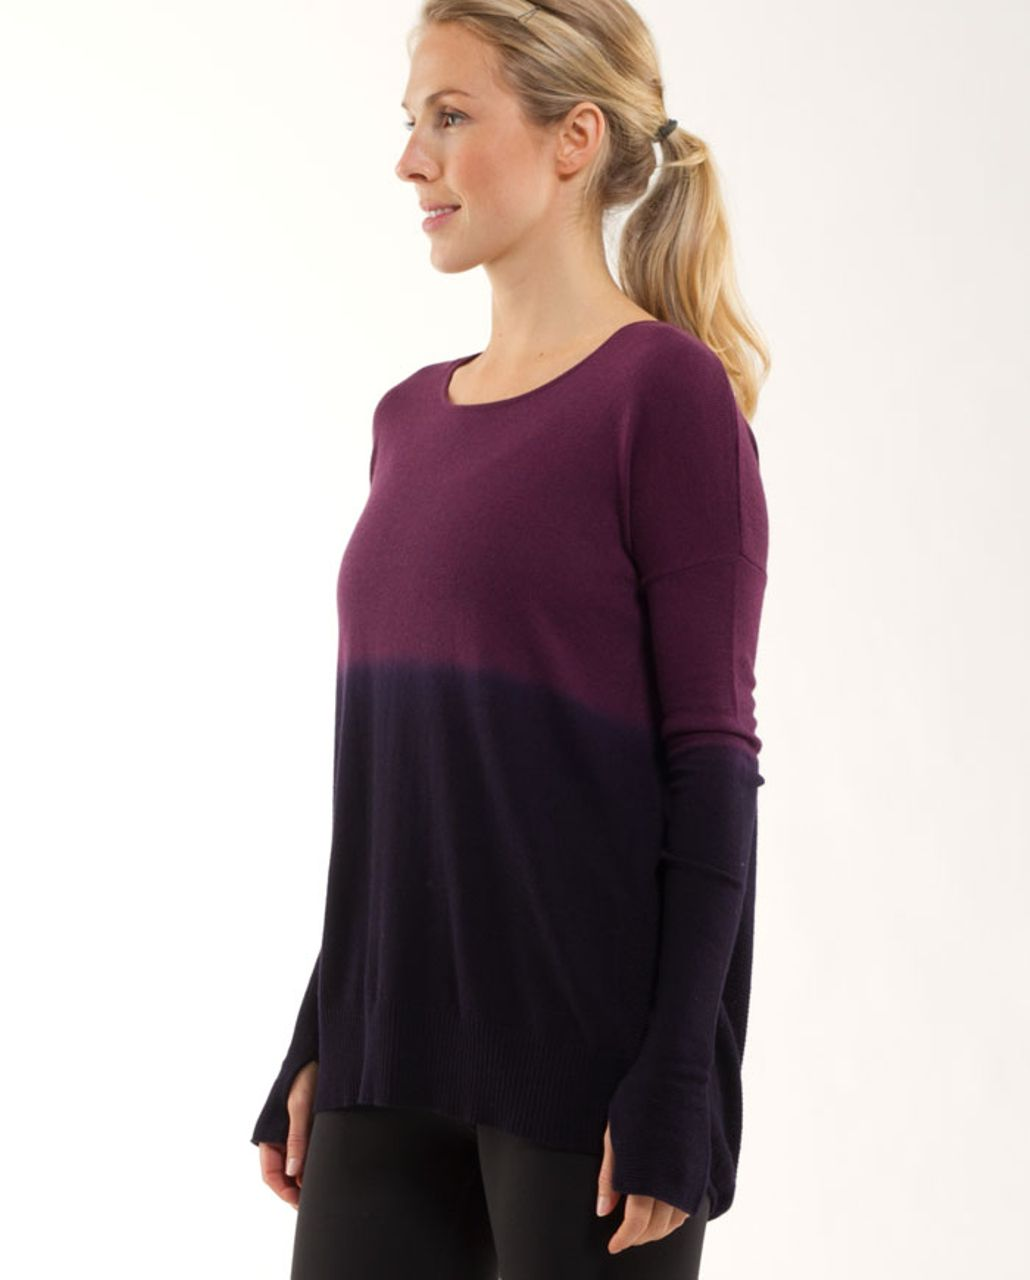 Lululemon Yoga Cozy Pullover - Heathered Plum / Black Swan